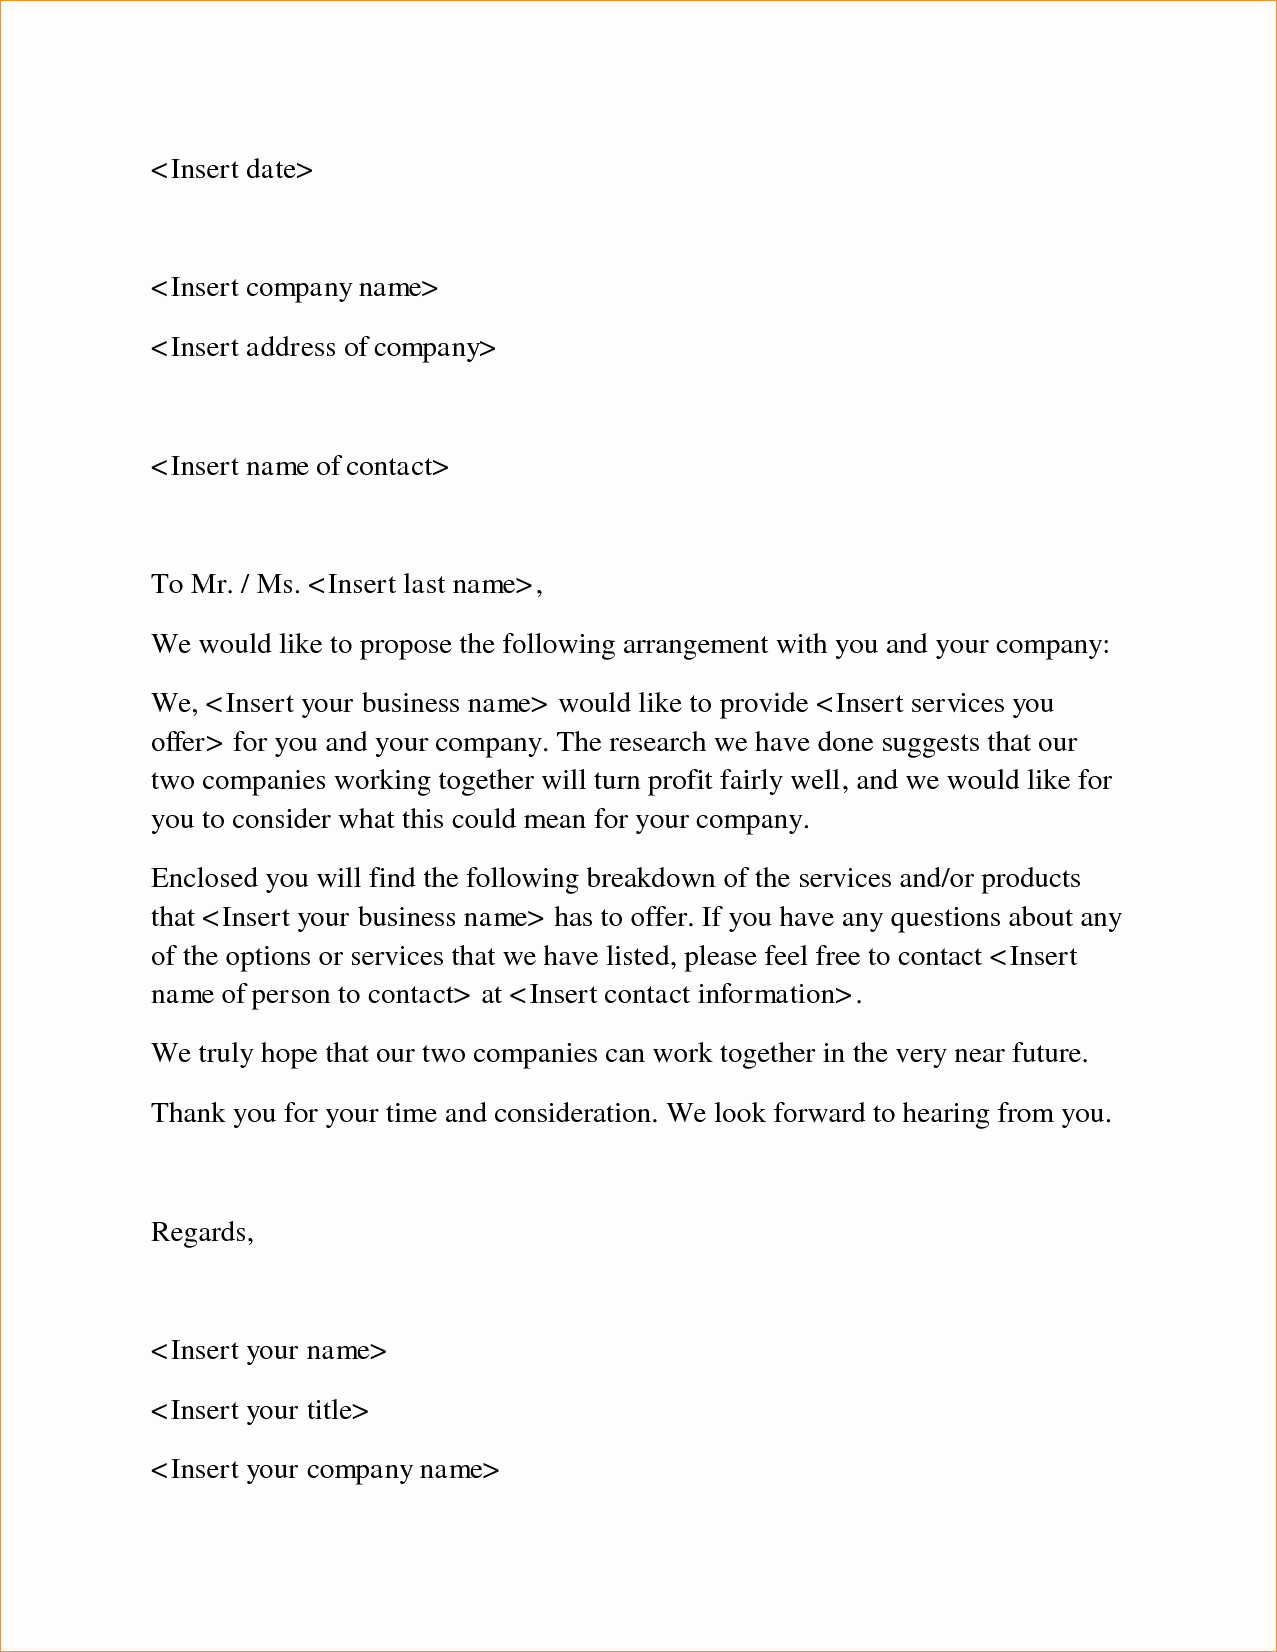 Business Proposal Sample for Services Lovely Business Proposal Sample Letter Business Proposal